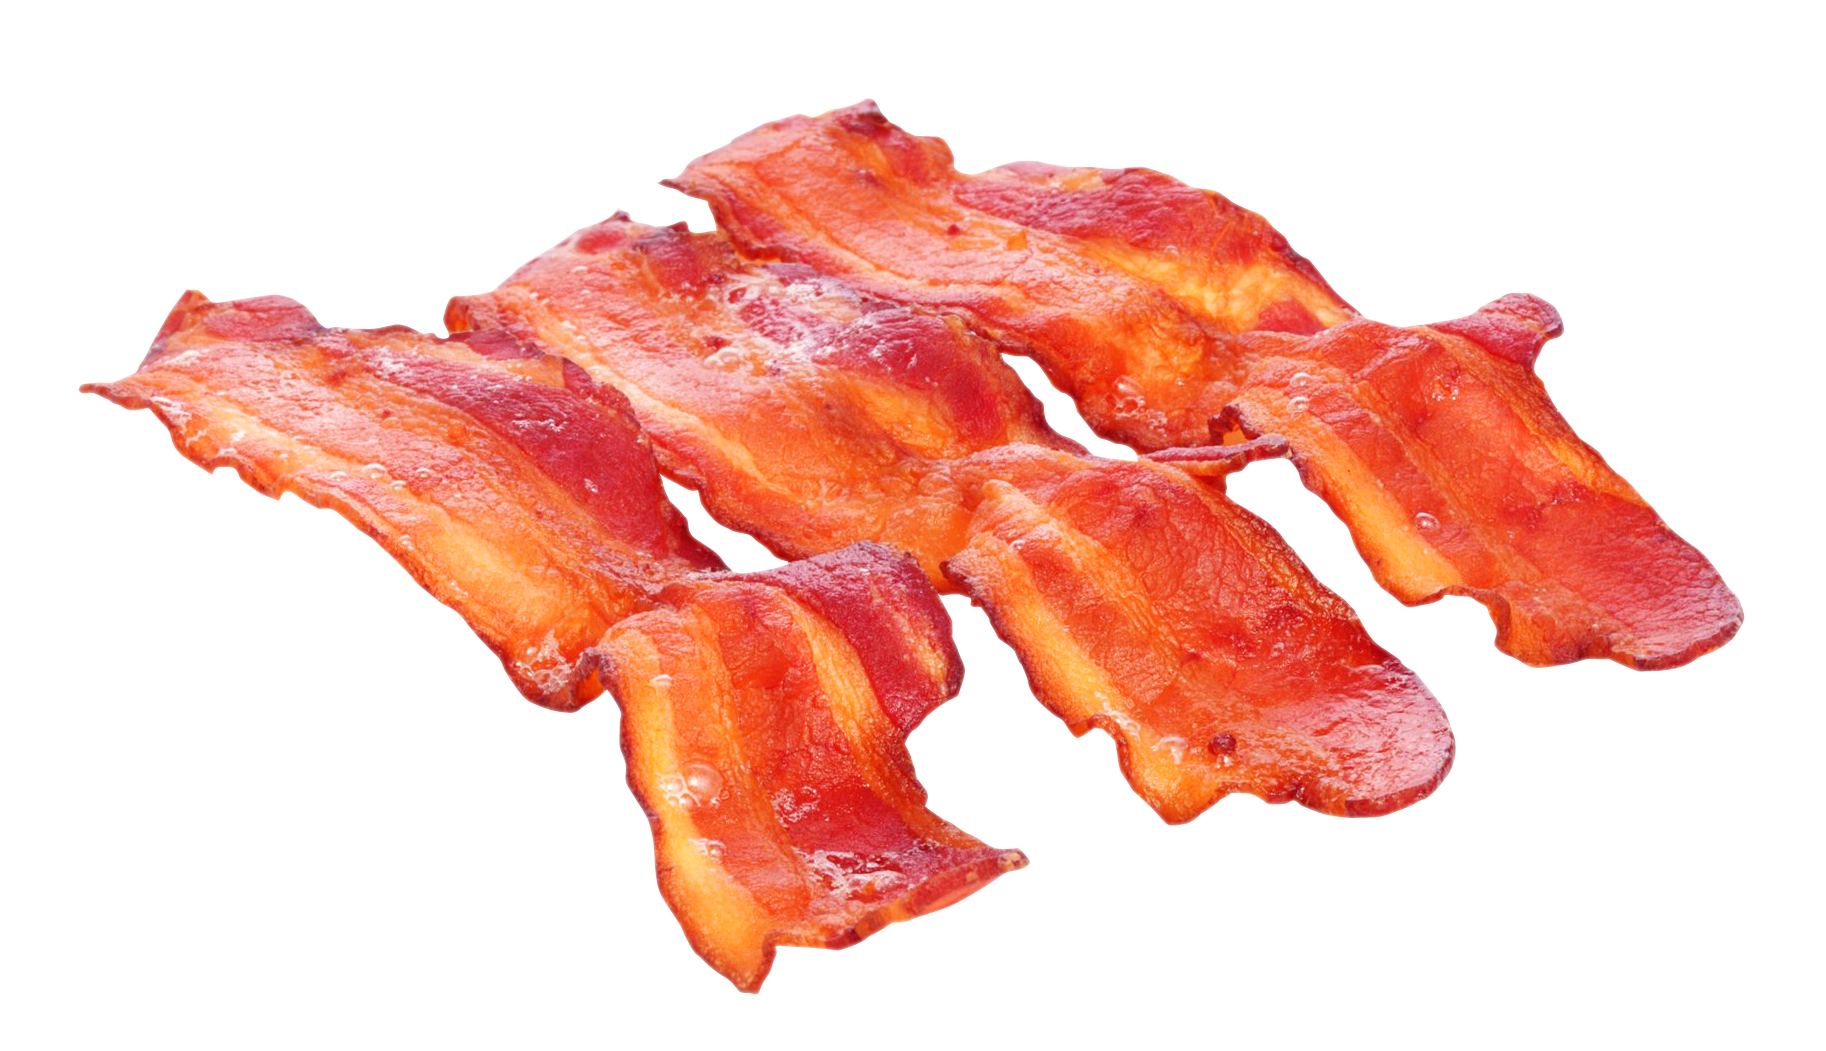 Bacon PNG Image #44370.